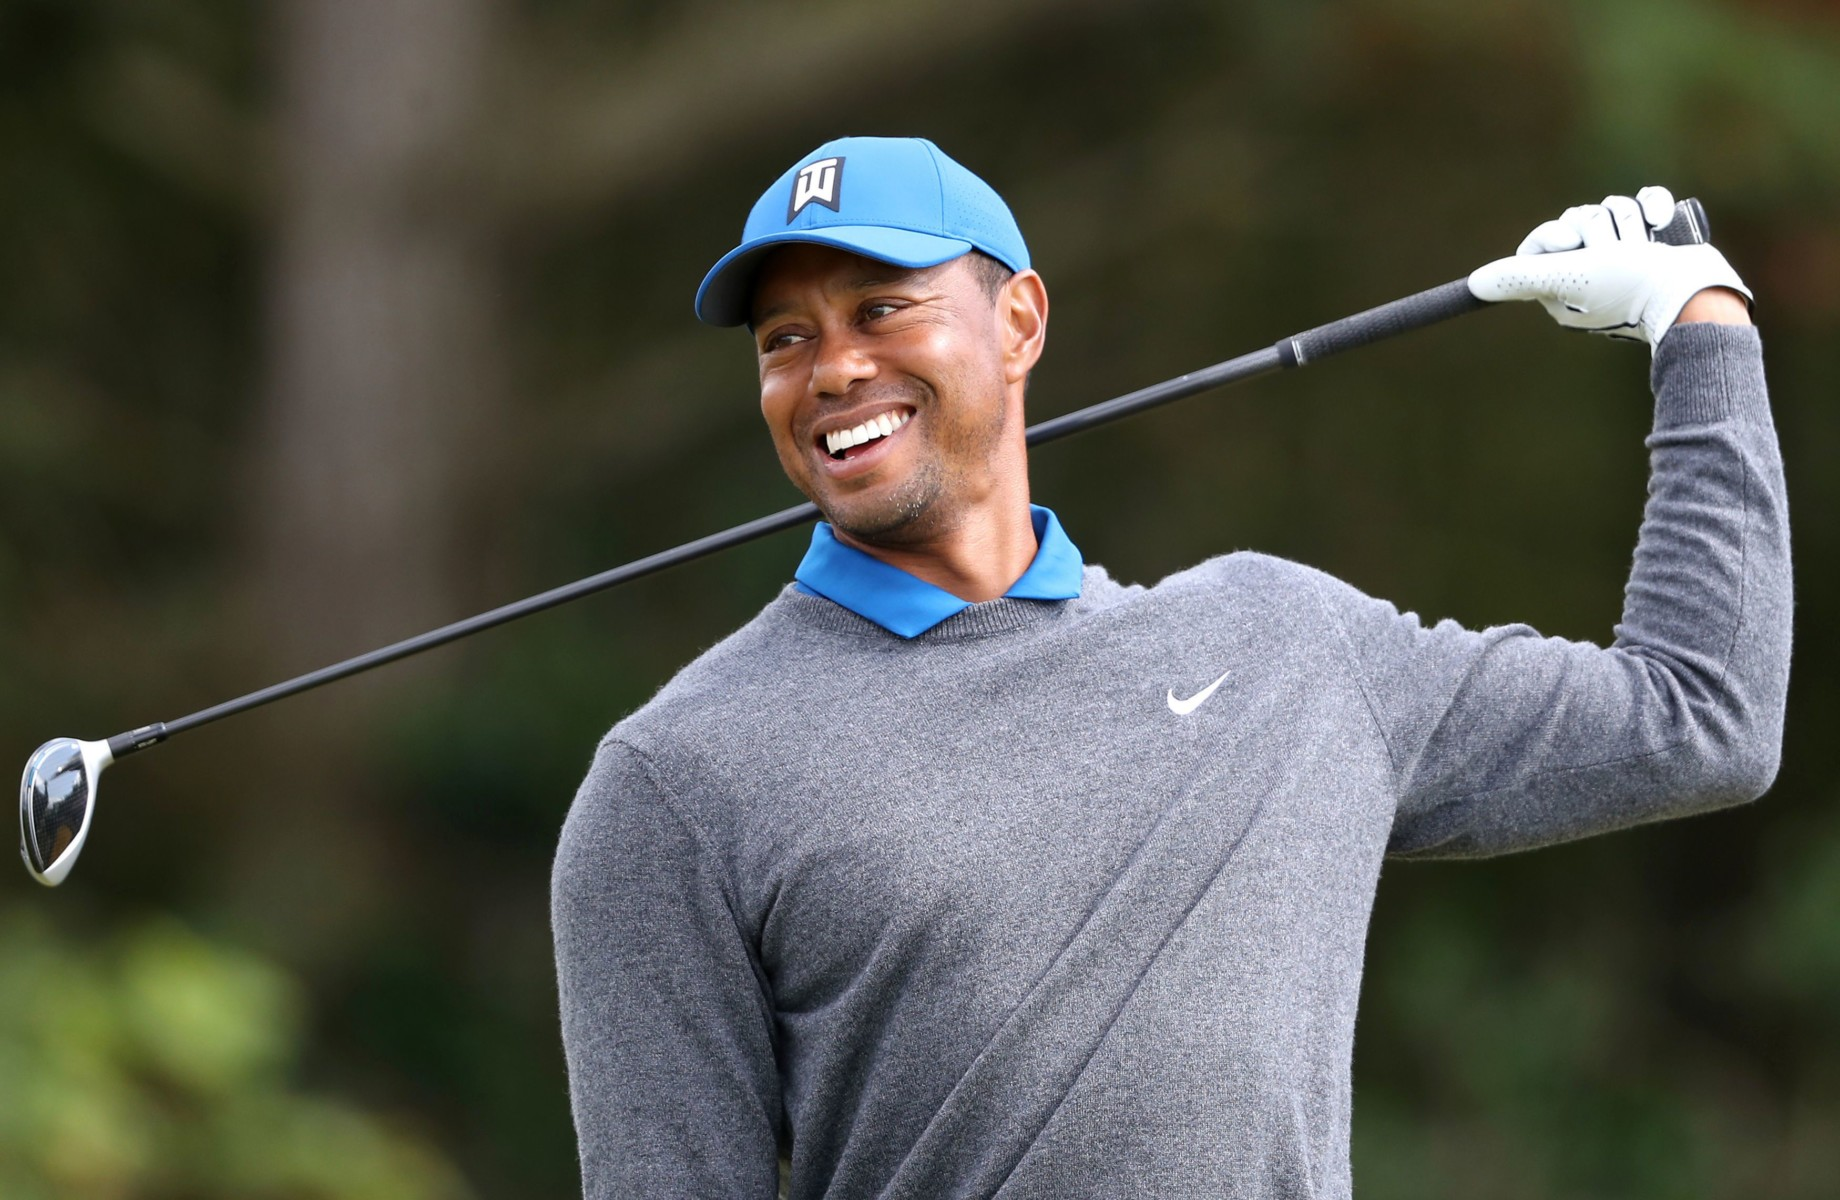 Tiger Woods top of golf money list with American winning ...